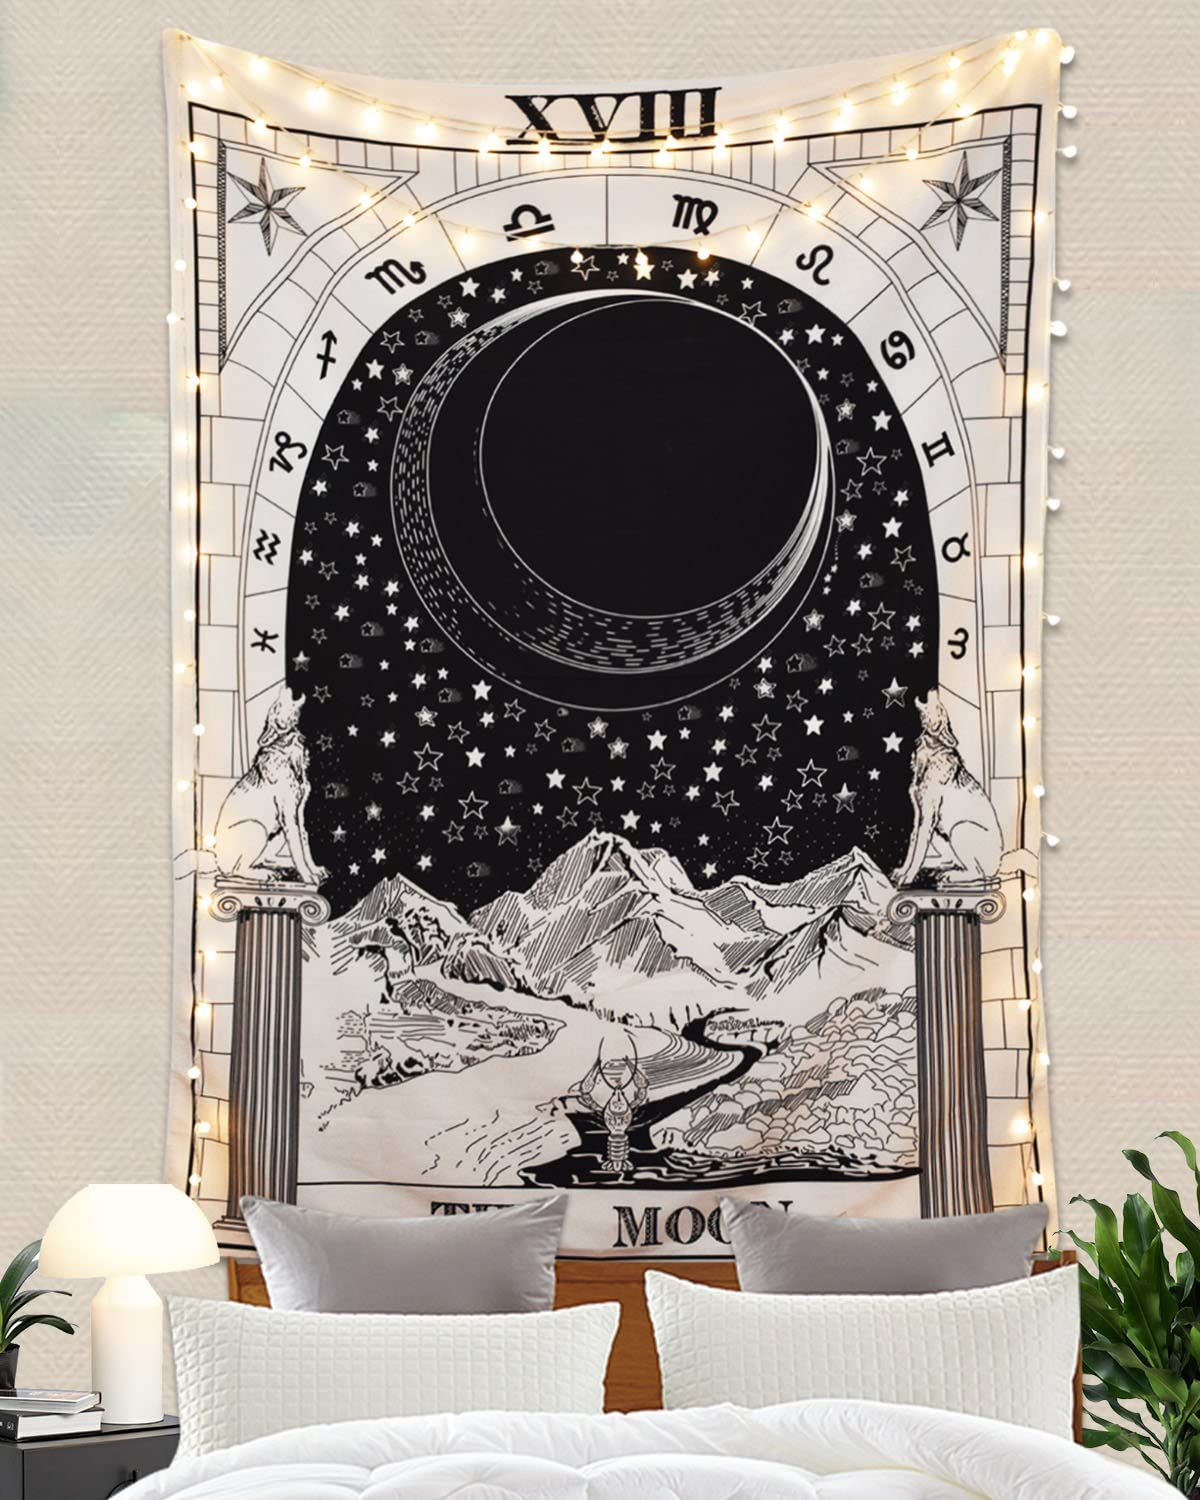 """Romantic Tarot Tapestry The Moon The Star The Sun Tapestry Medieval Europe Divination Tapestry Wall Hanging Tapestries Mysterious Wall Tapestry for Home Decor (59""""×82"""", The Moon)"""